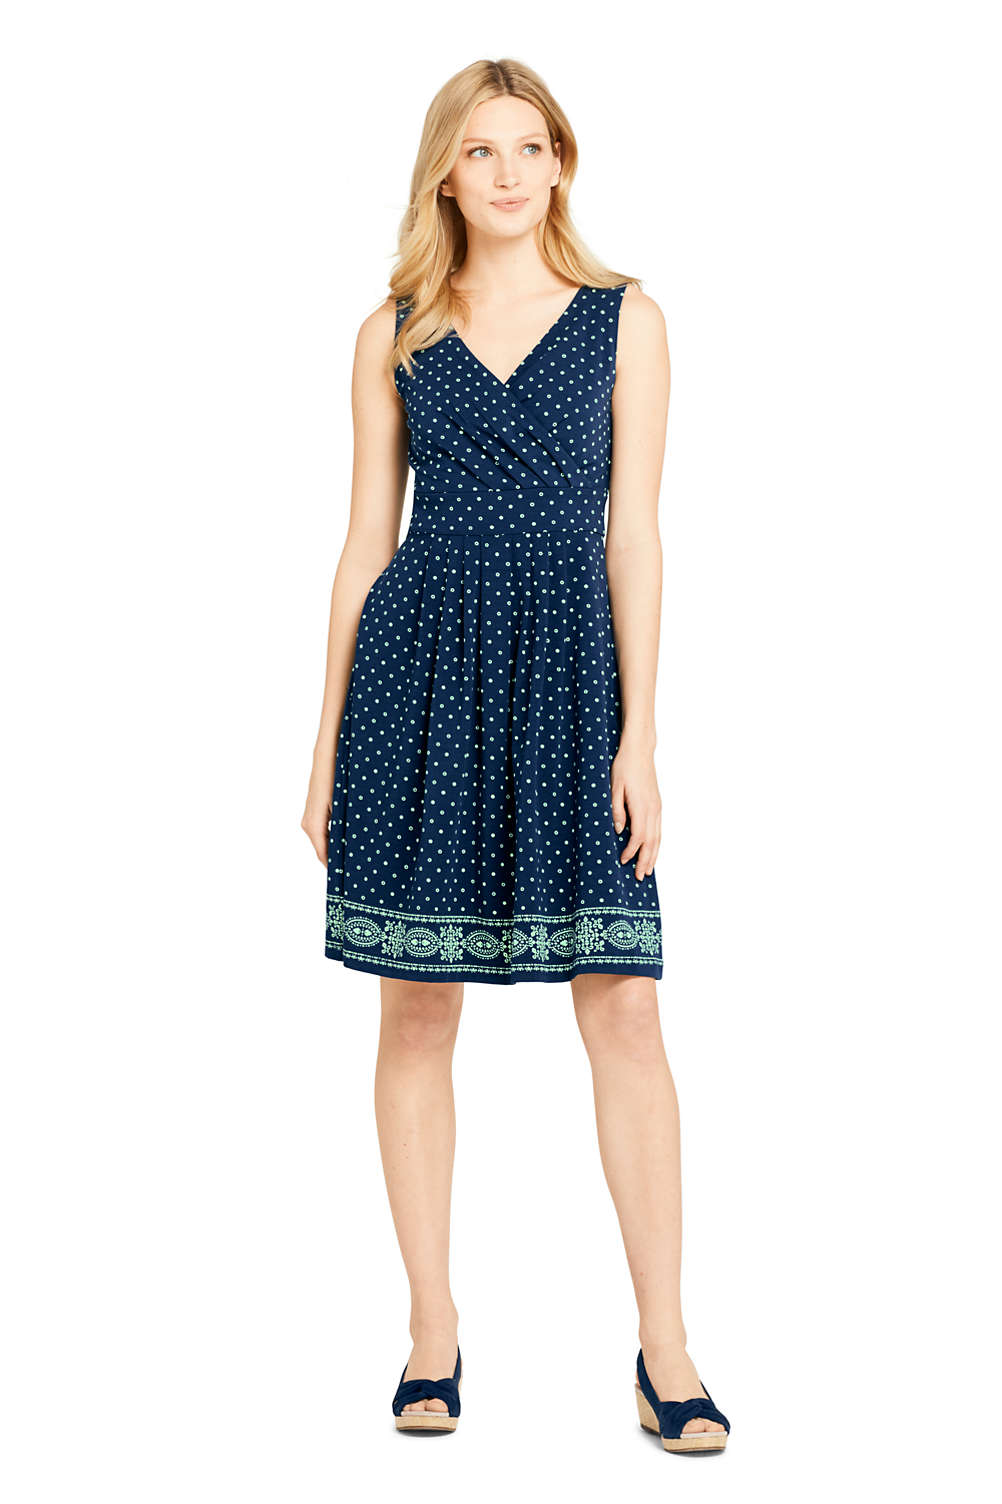 1dce94e67c732 Women s Banded Waist Fit and Flare Dress Knee Length from Lands  End